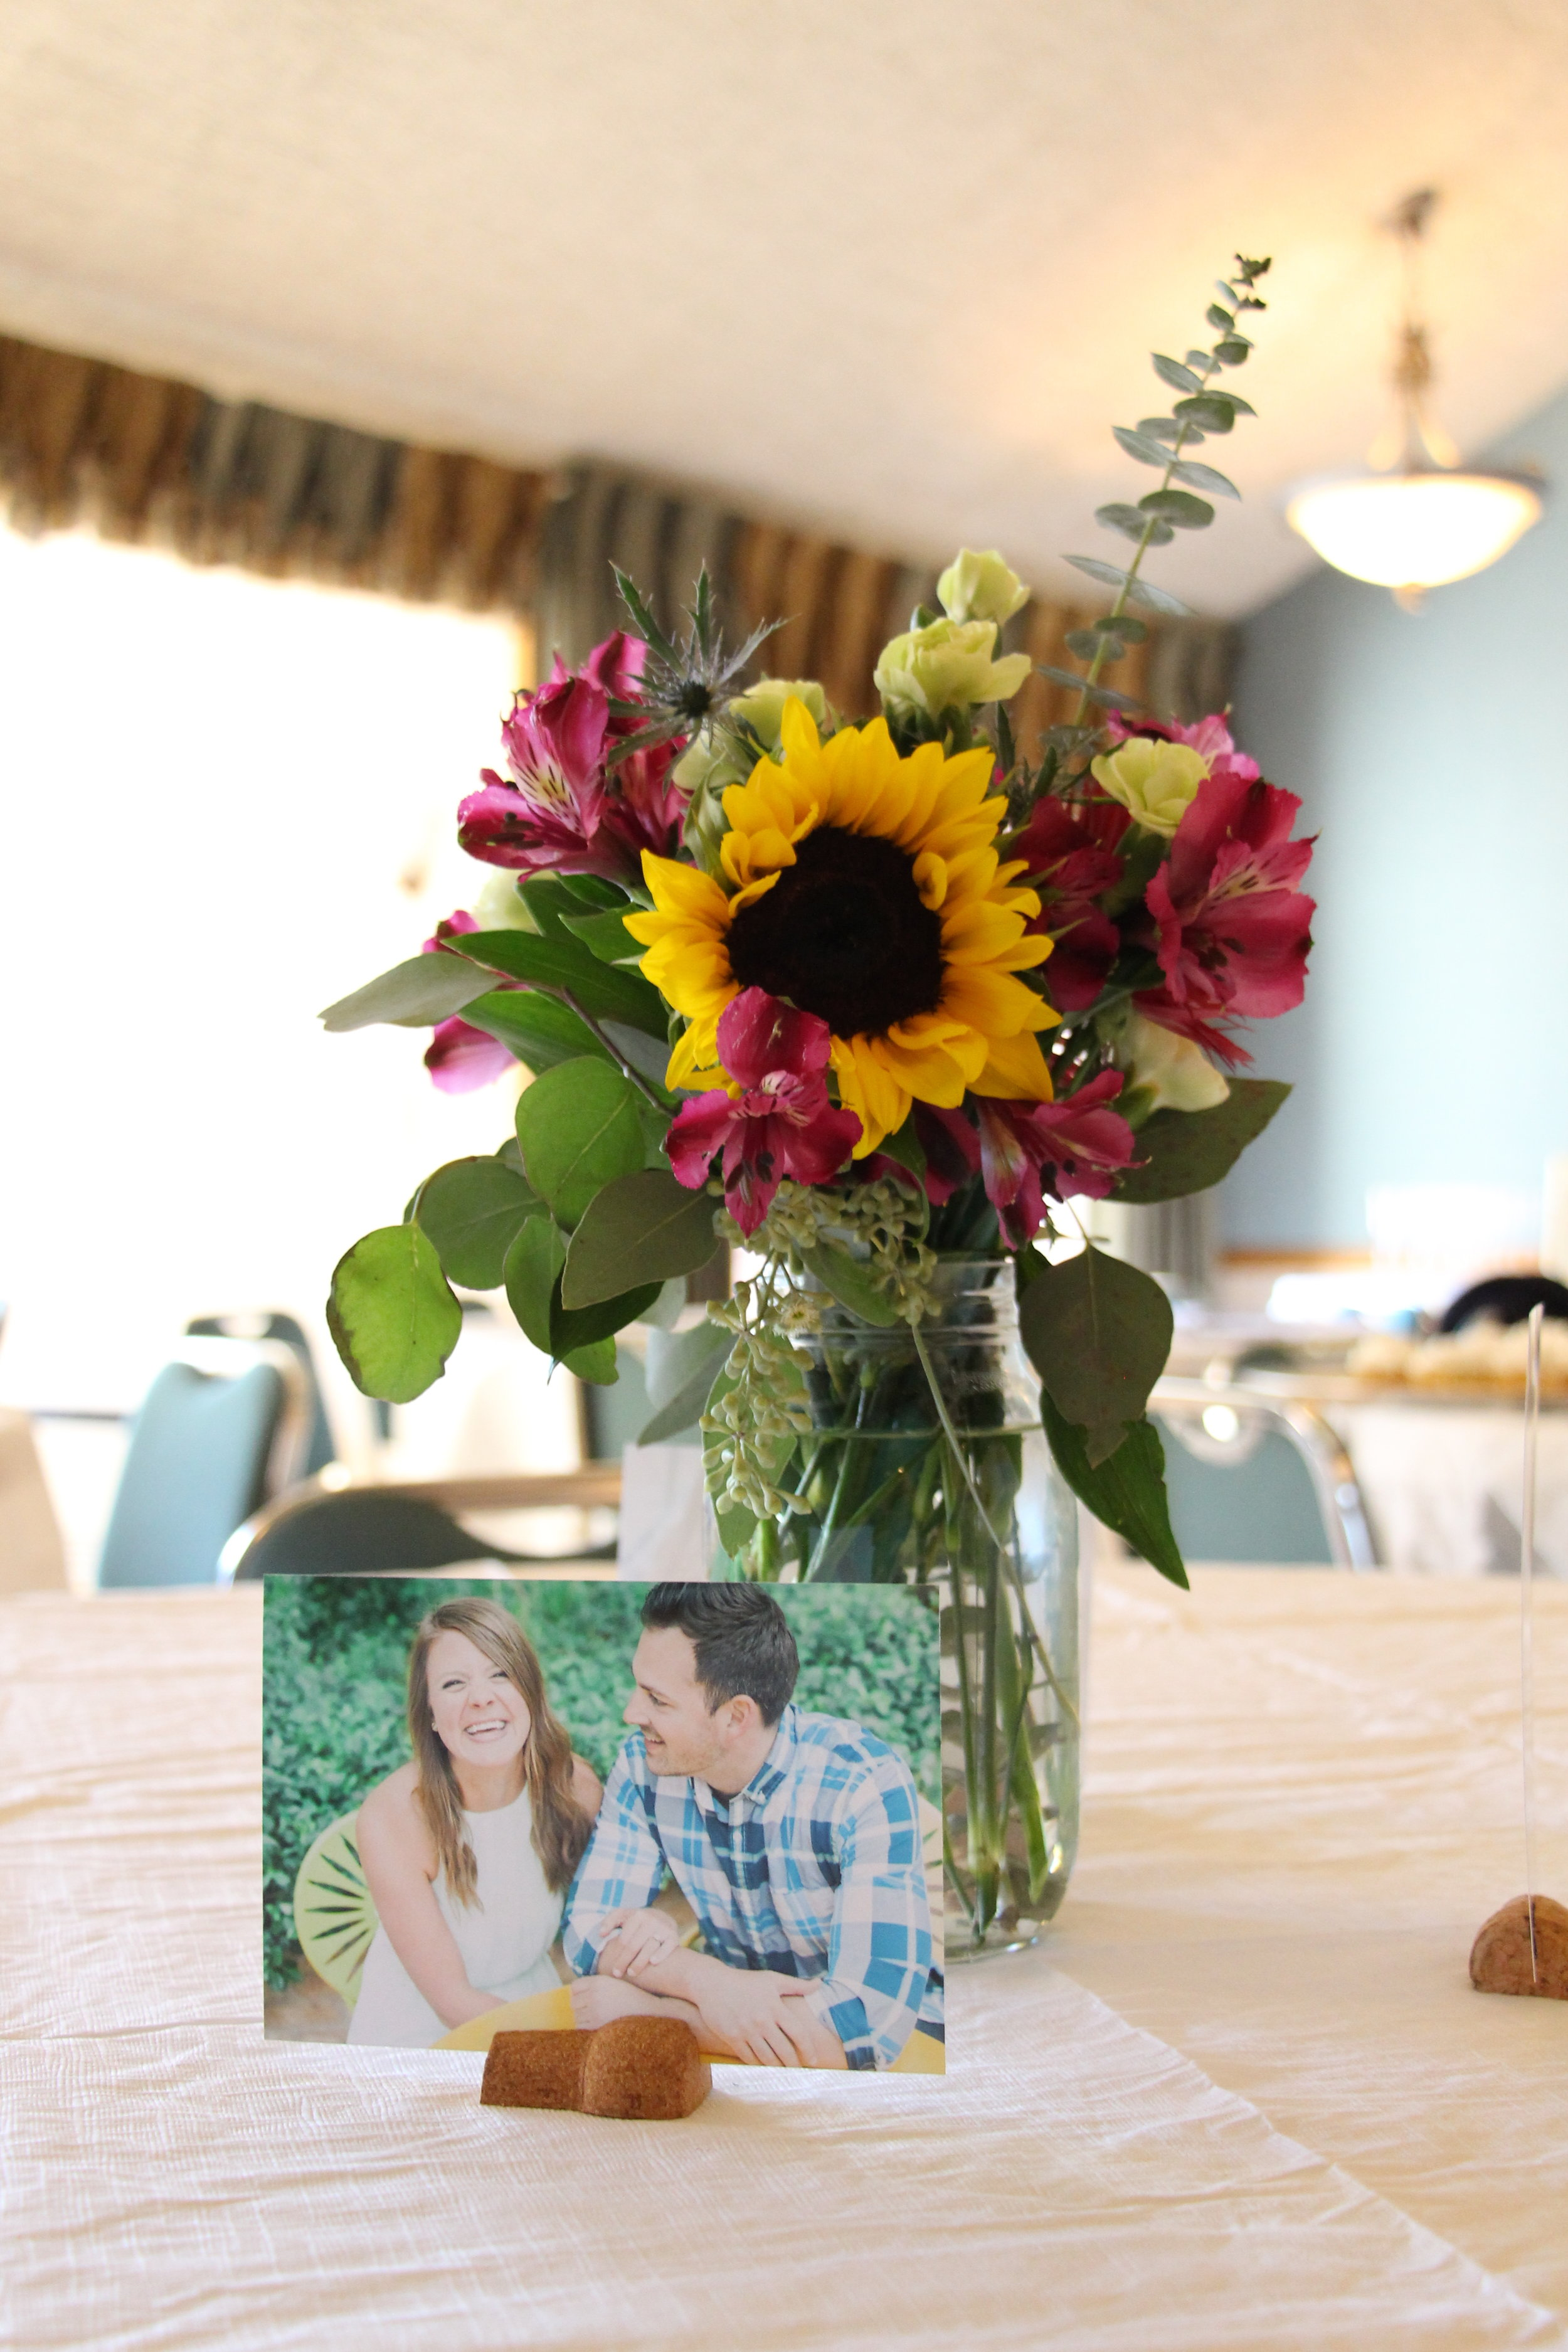 brunch and bubbly bridal shower centerpieces by Mindy Larsen